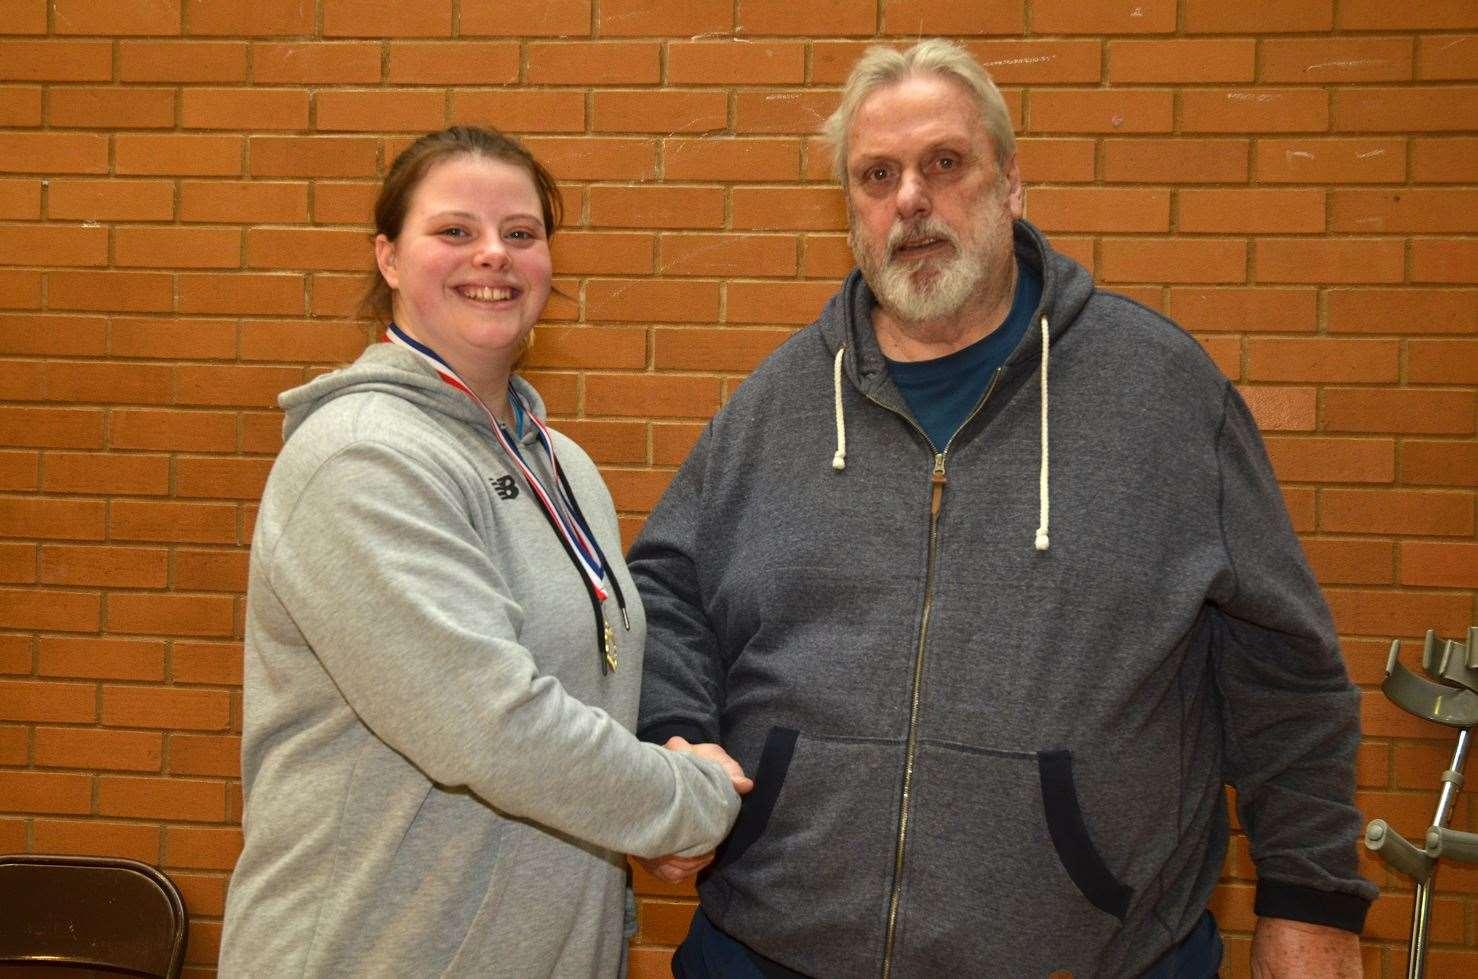 Elizabeth Moorhouse with Geoff Capes at a Lincs Throws Academy event in Bourne.Photo by Tim Wilson.SG-160220-137TW.